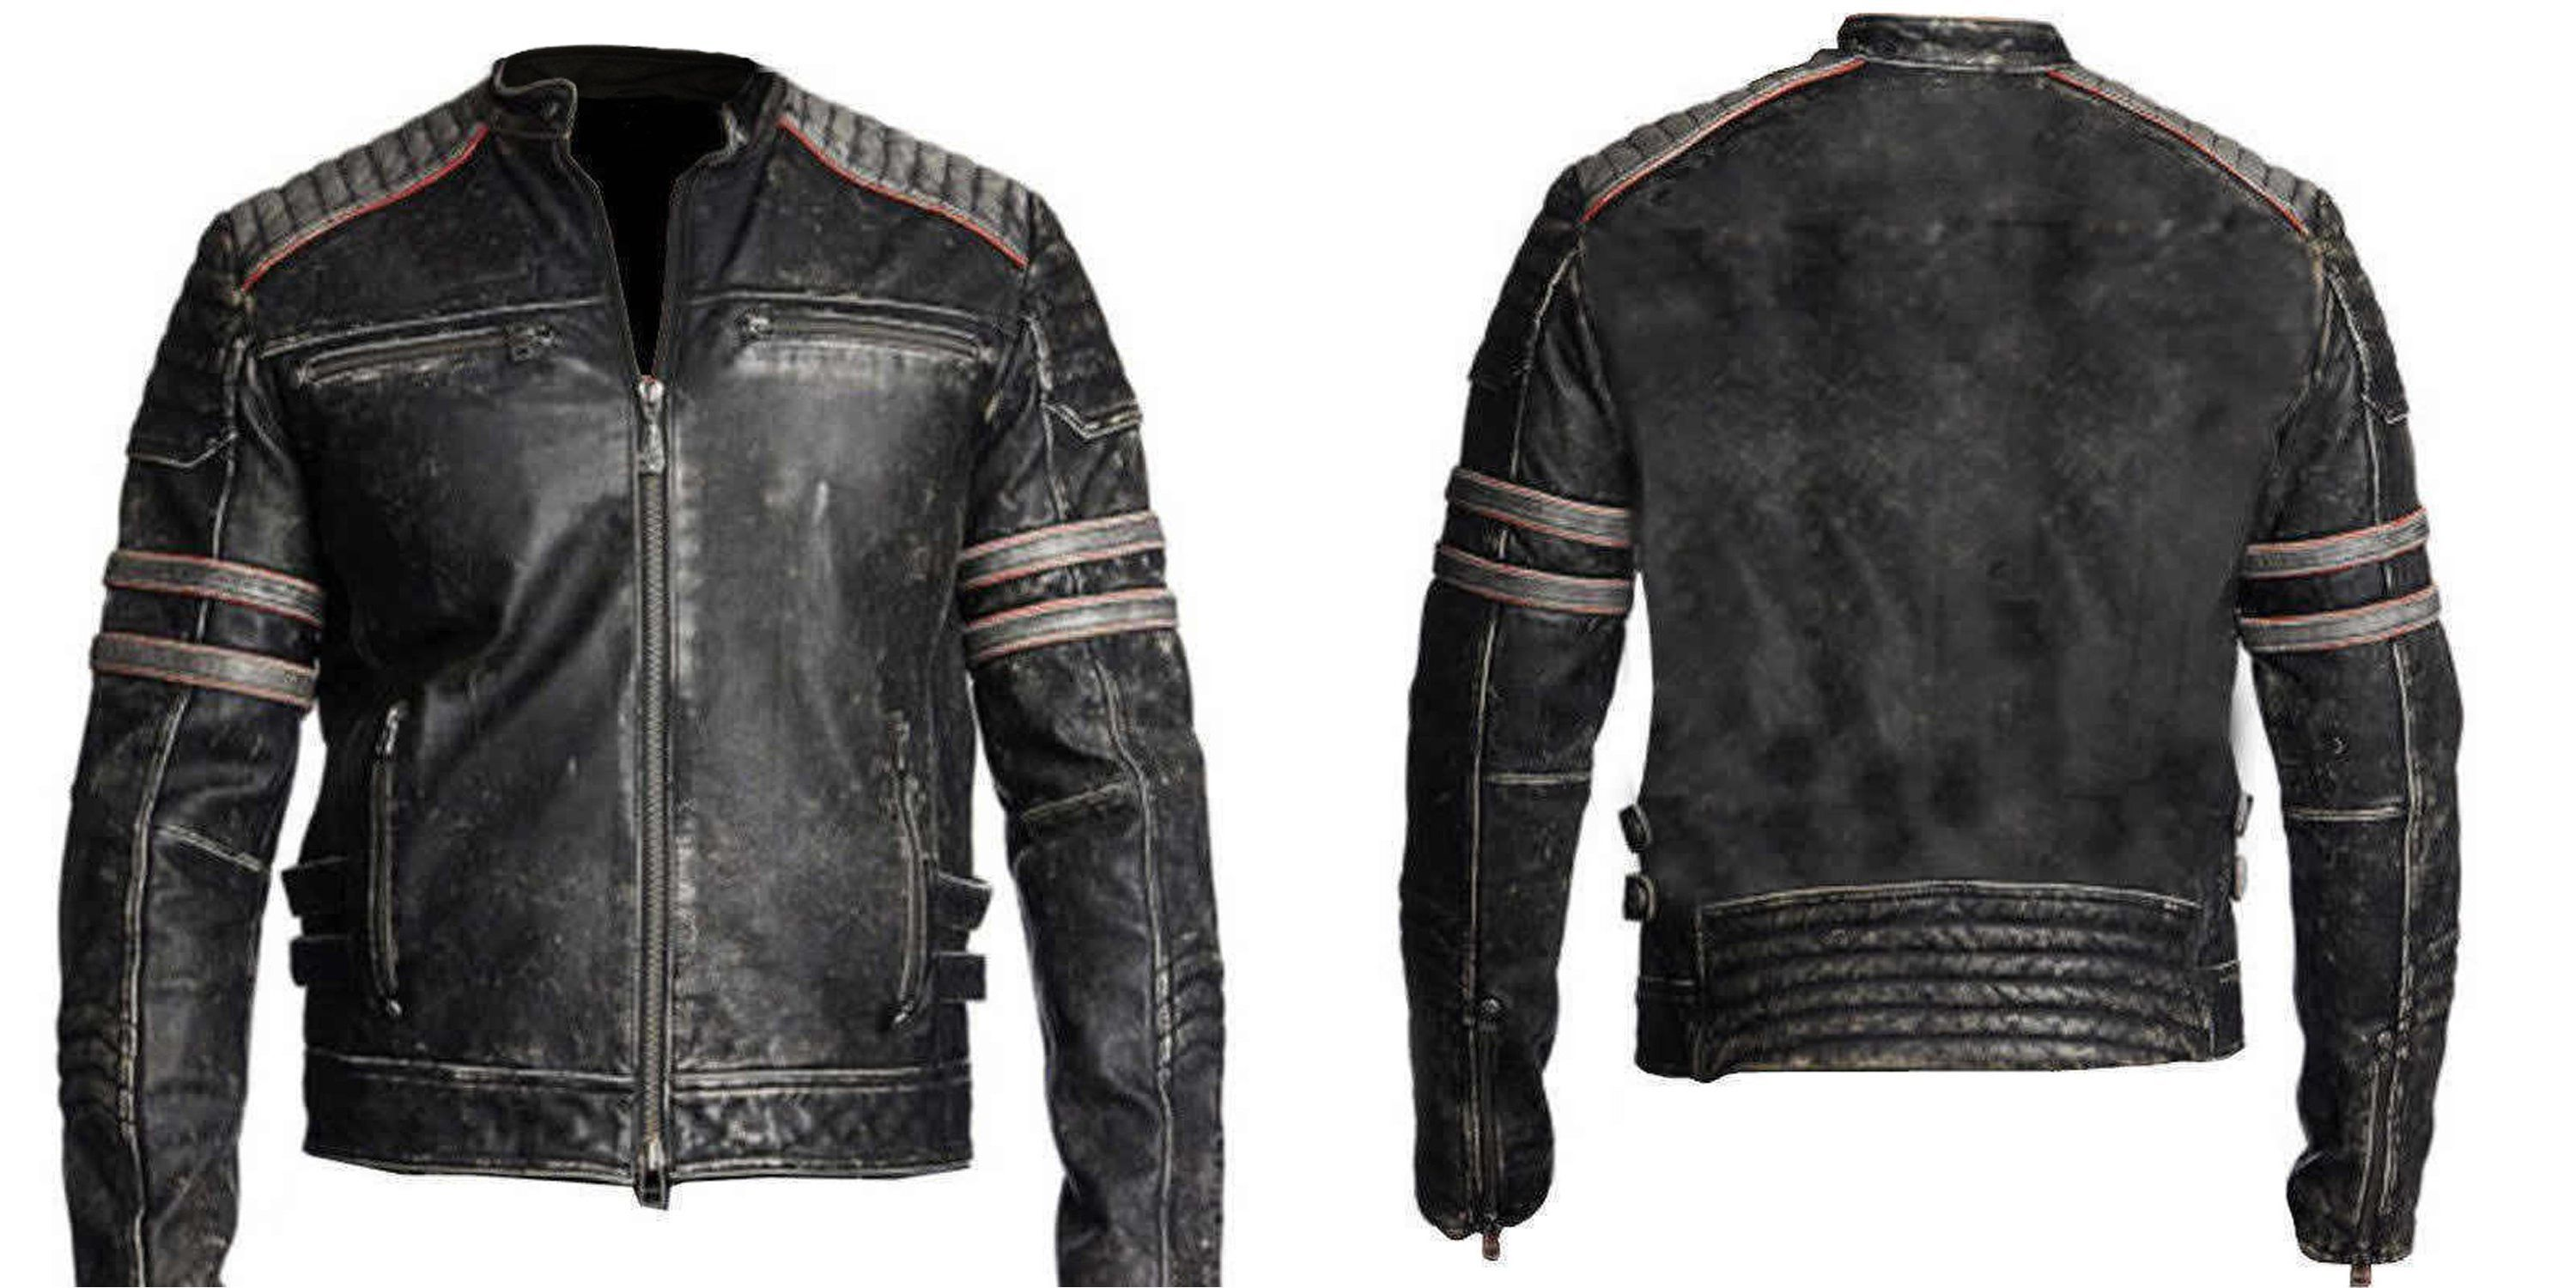 Leather jackets are the sexiest attire since long and men have adorned them with style. This Black retro jacket is made of goat distressed leather and is durable in all weathers. The standup collar and the large amount of pockets makes it a must buy as the pockets come in handy to put in your accessories.   #bikers #bikerboys #lovers #fans #boysfashion #boyscollection #menfashion #shopping #hot #sexy #stylish #costume #menclothing #menJacket #superhotfashion #parties #casual #menswear #love